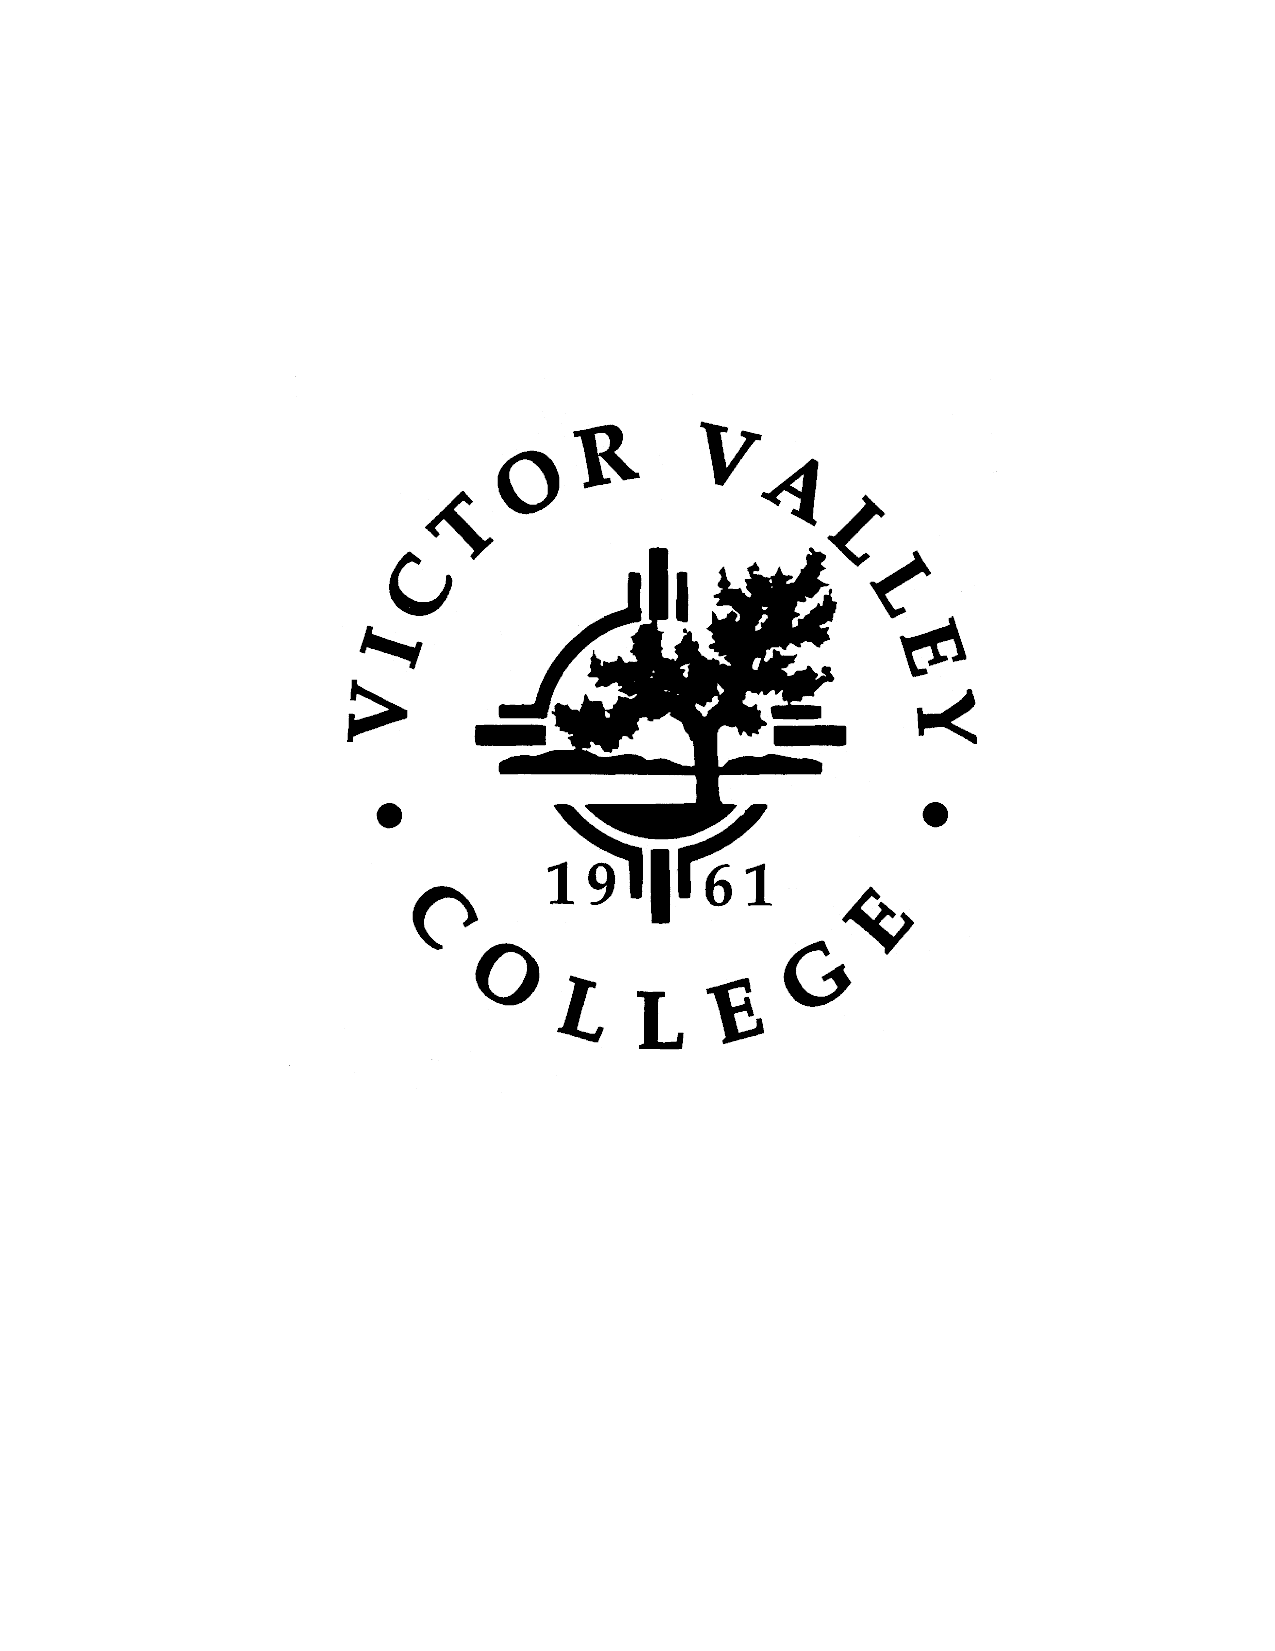 2007-2008 Victor Valley College Catalog 1 on